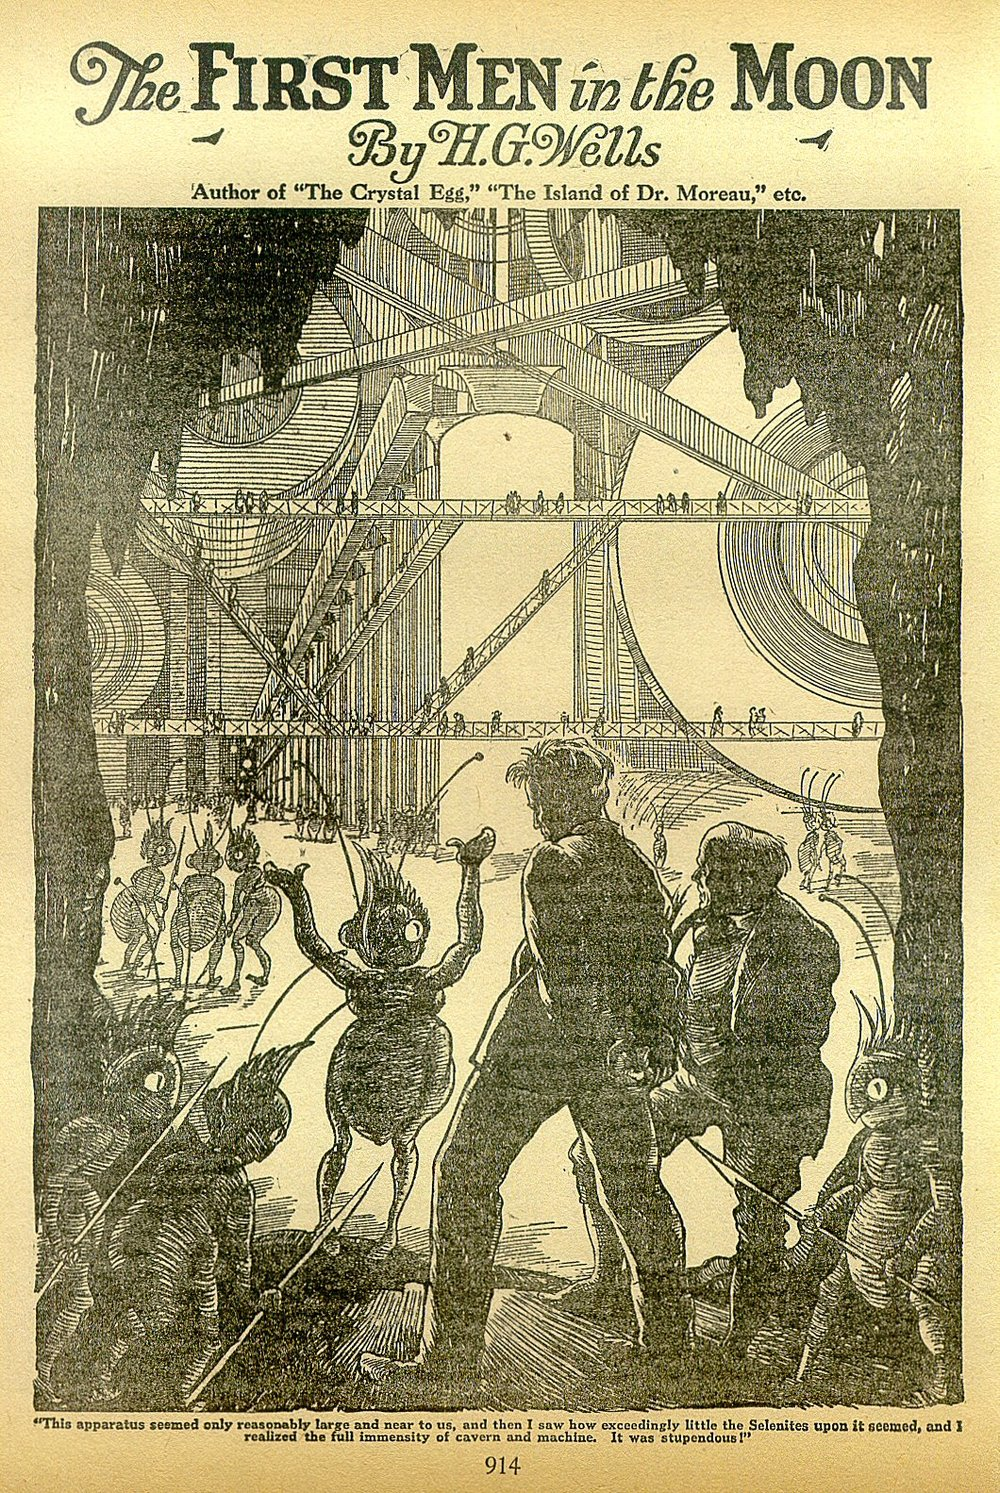 'Cavor and Bedford escorted to the interior of the Moon by Selenites', illustration from a reprint of H. G. Wells'  First Men in the Moon , 1901, in the American periodical  Amazing Stories .